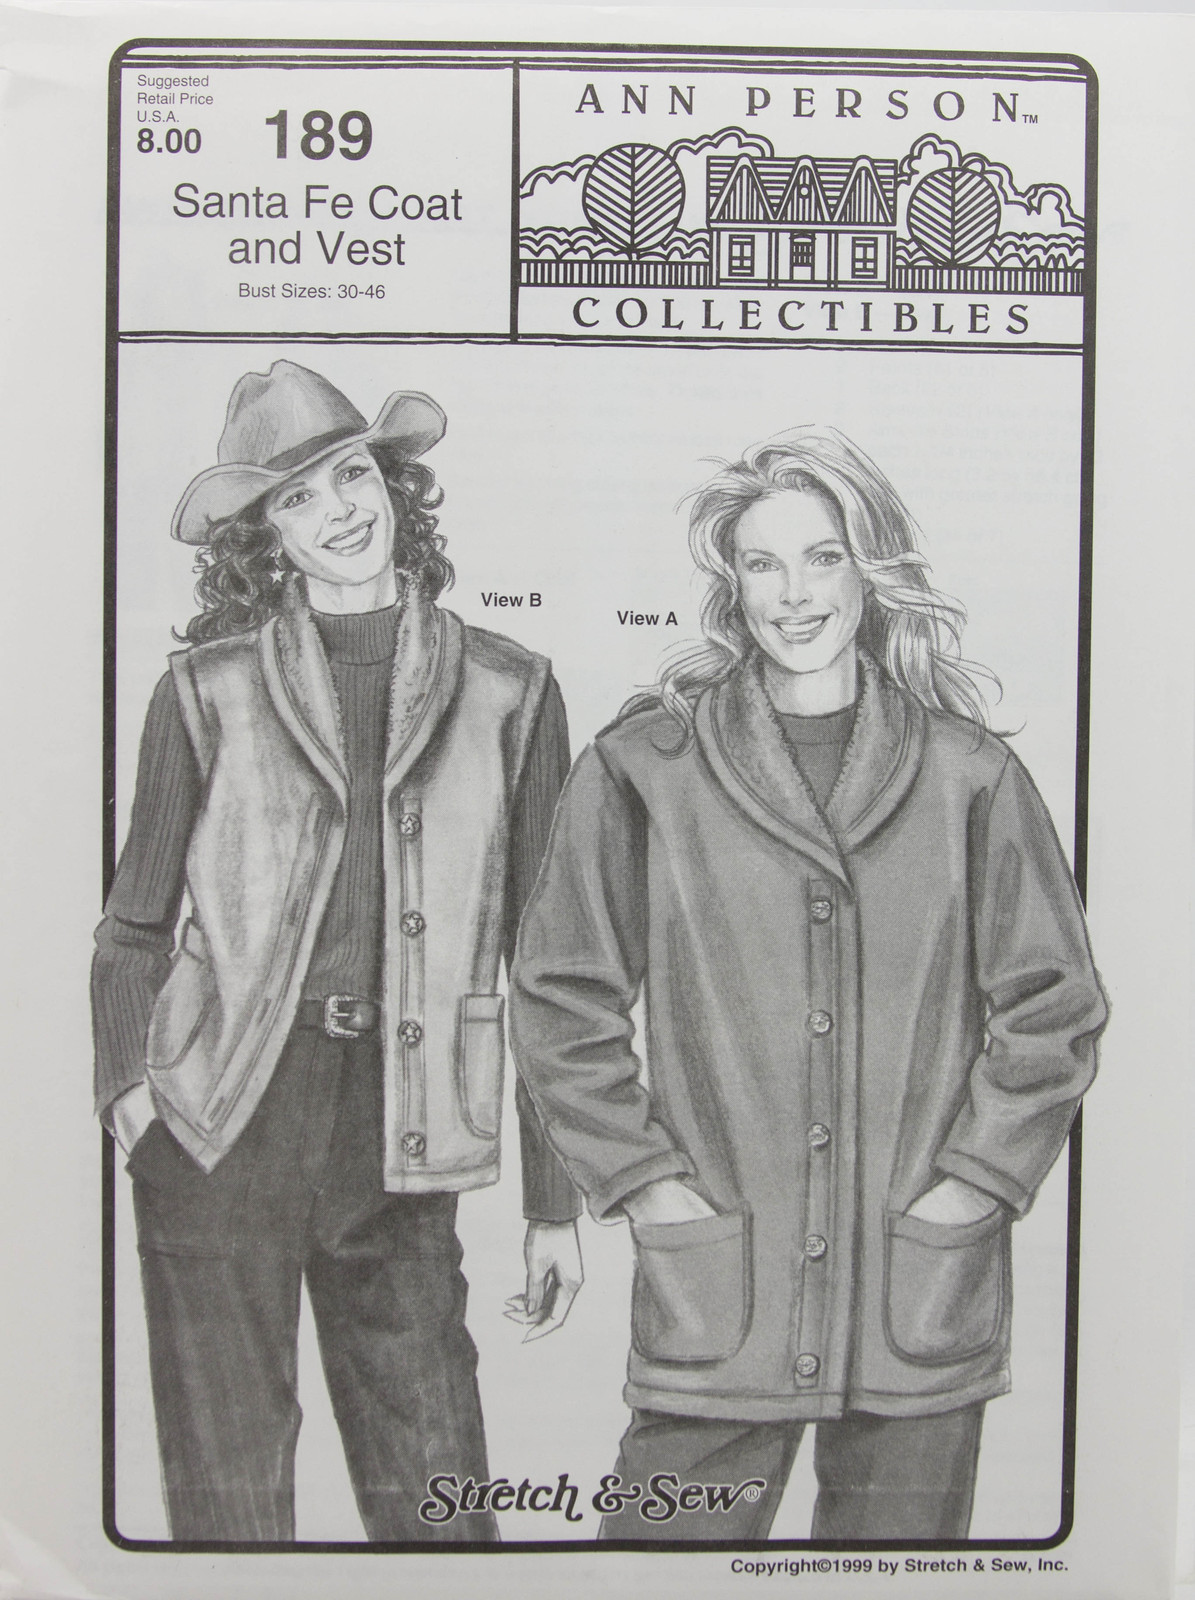 Stretch & Sew Sewing Pattern - Ann Person Collectibles - #189 Santa Fe Coat & Ve